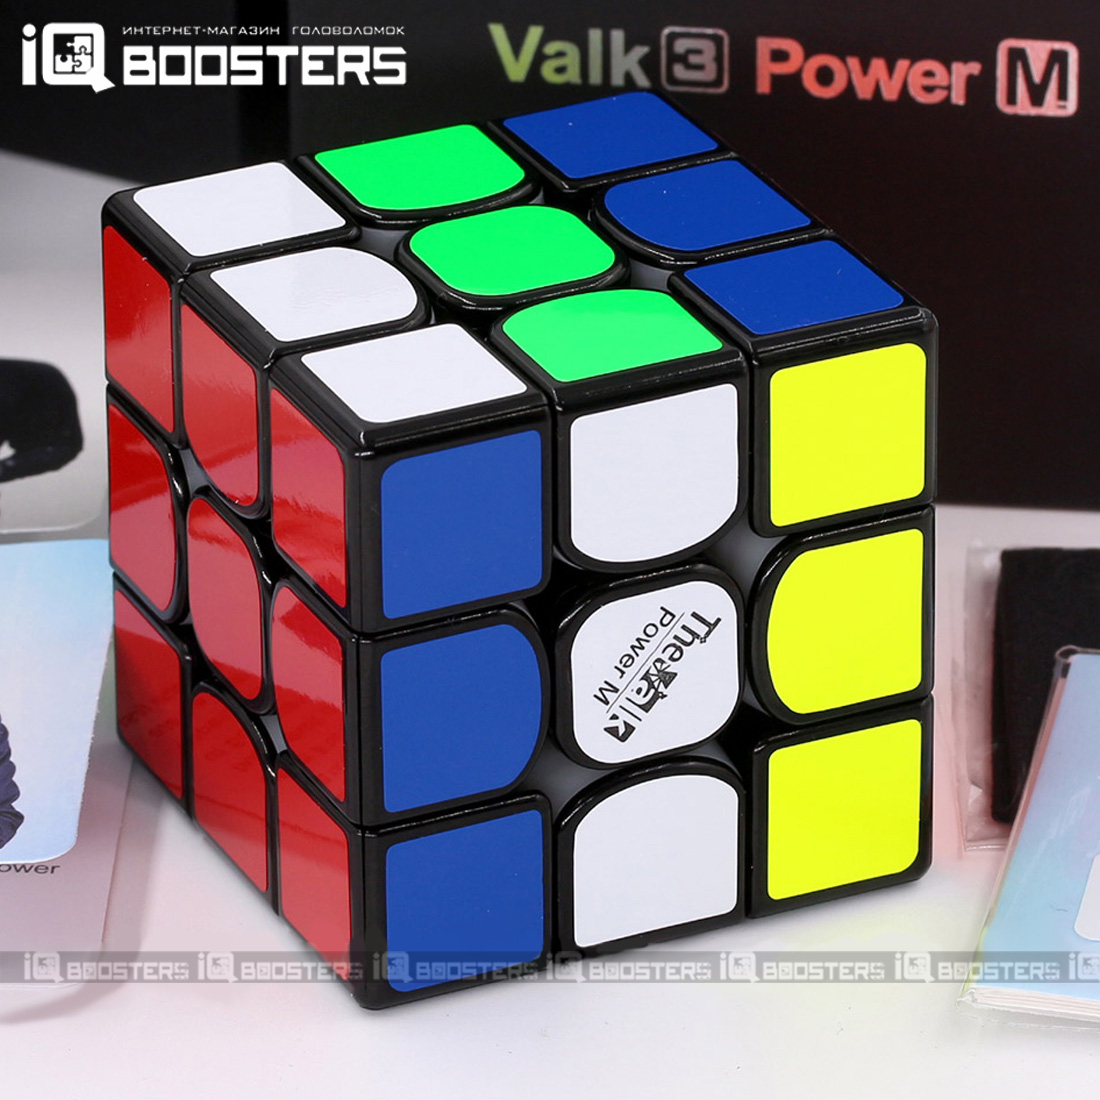 valk3_power_m_b2